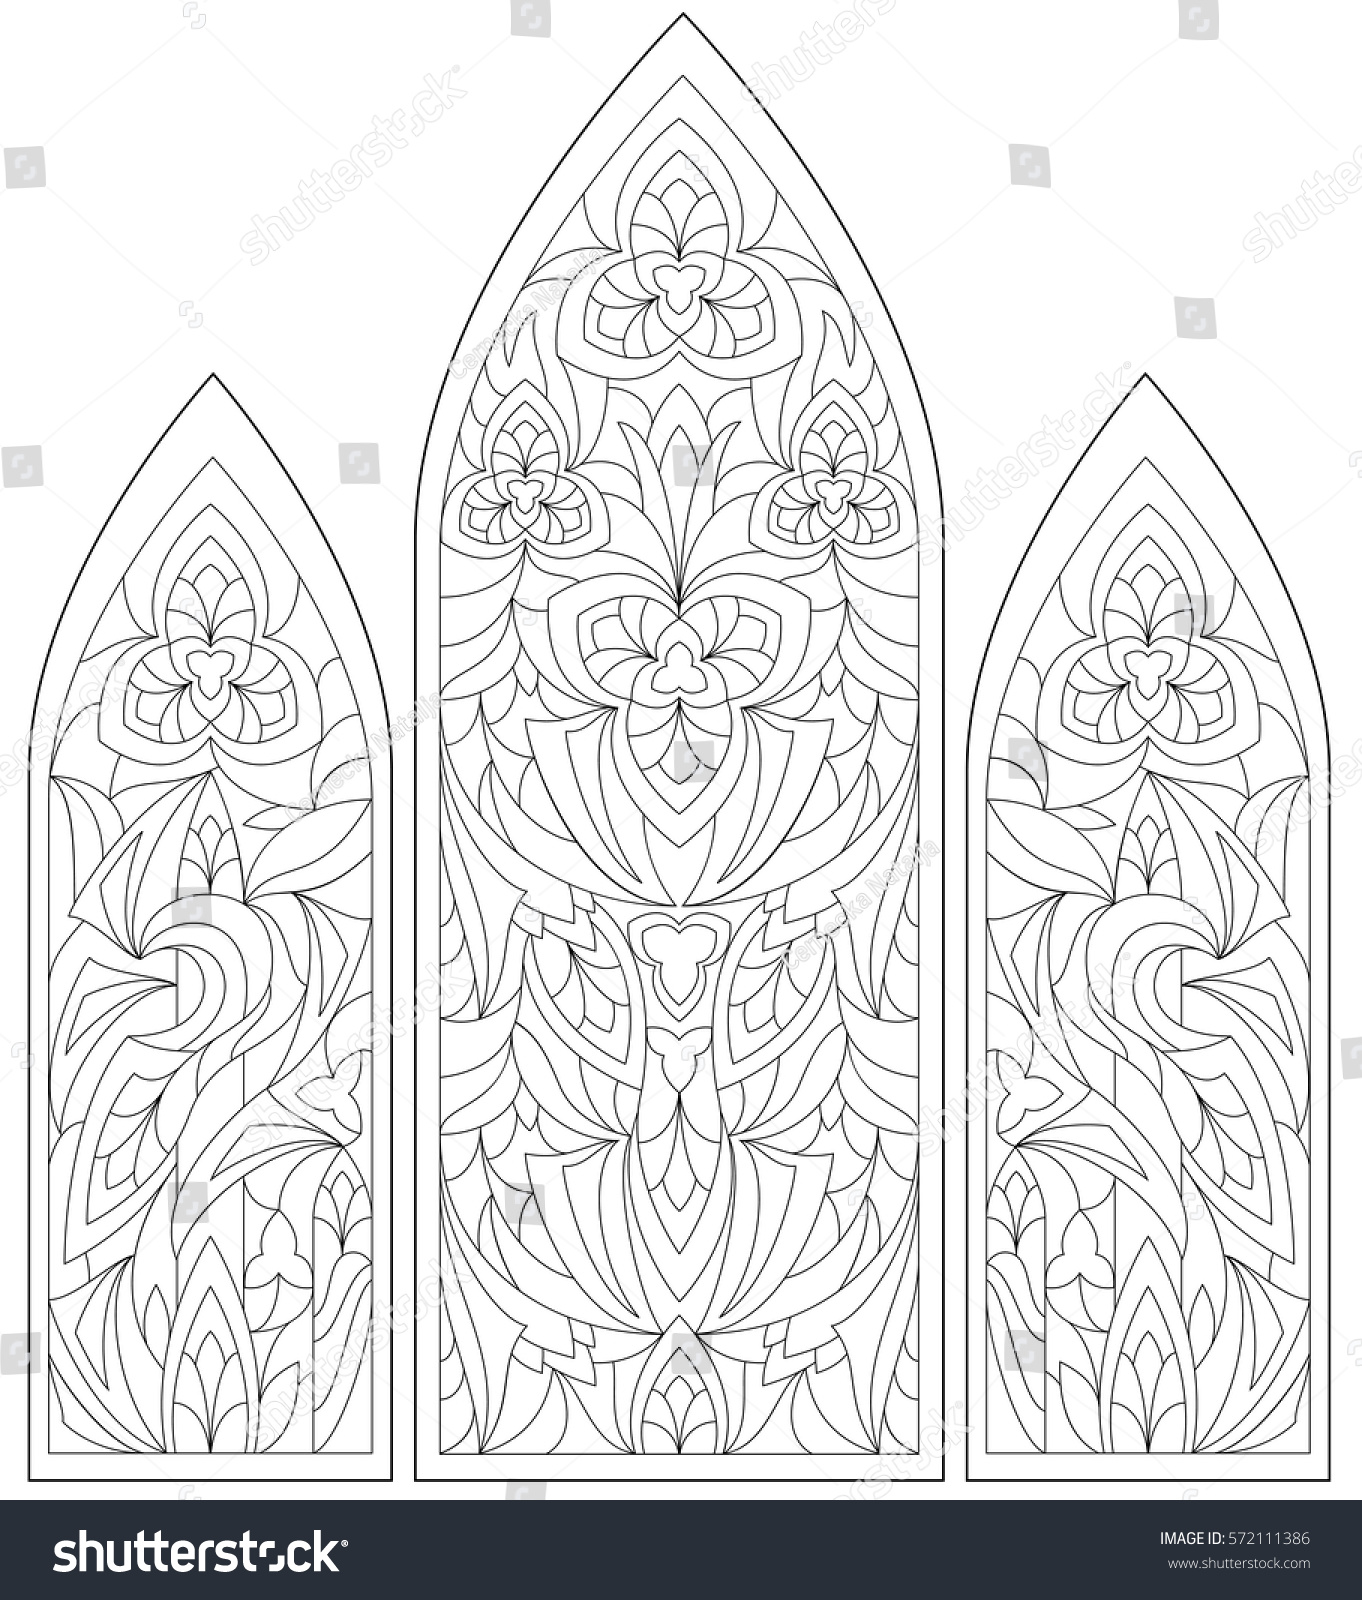 black white page coloring fantasy drawing stock vector 572111386